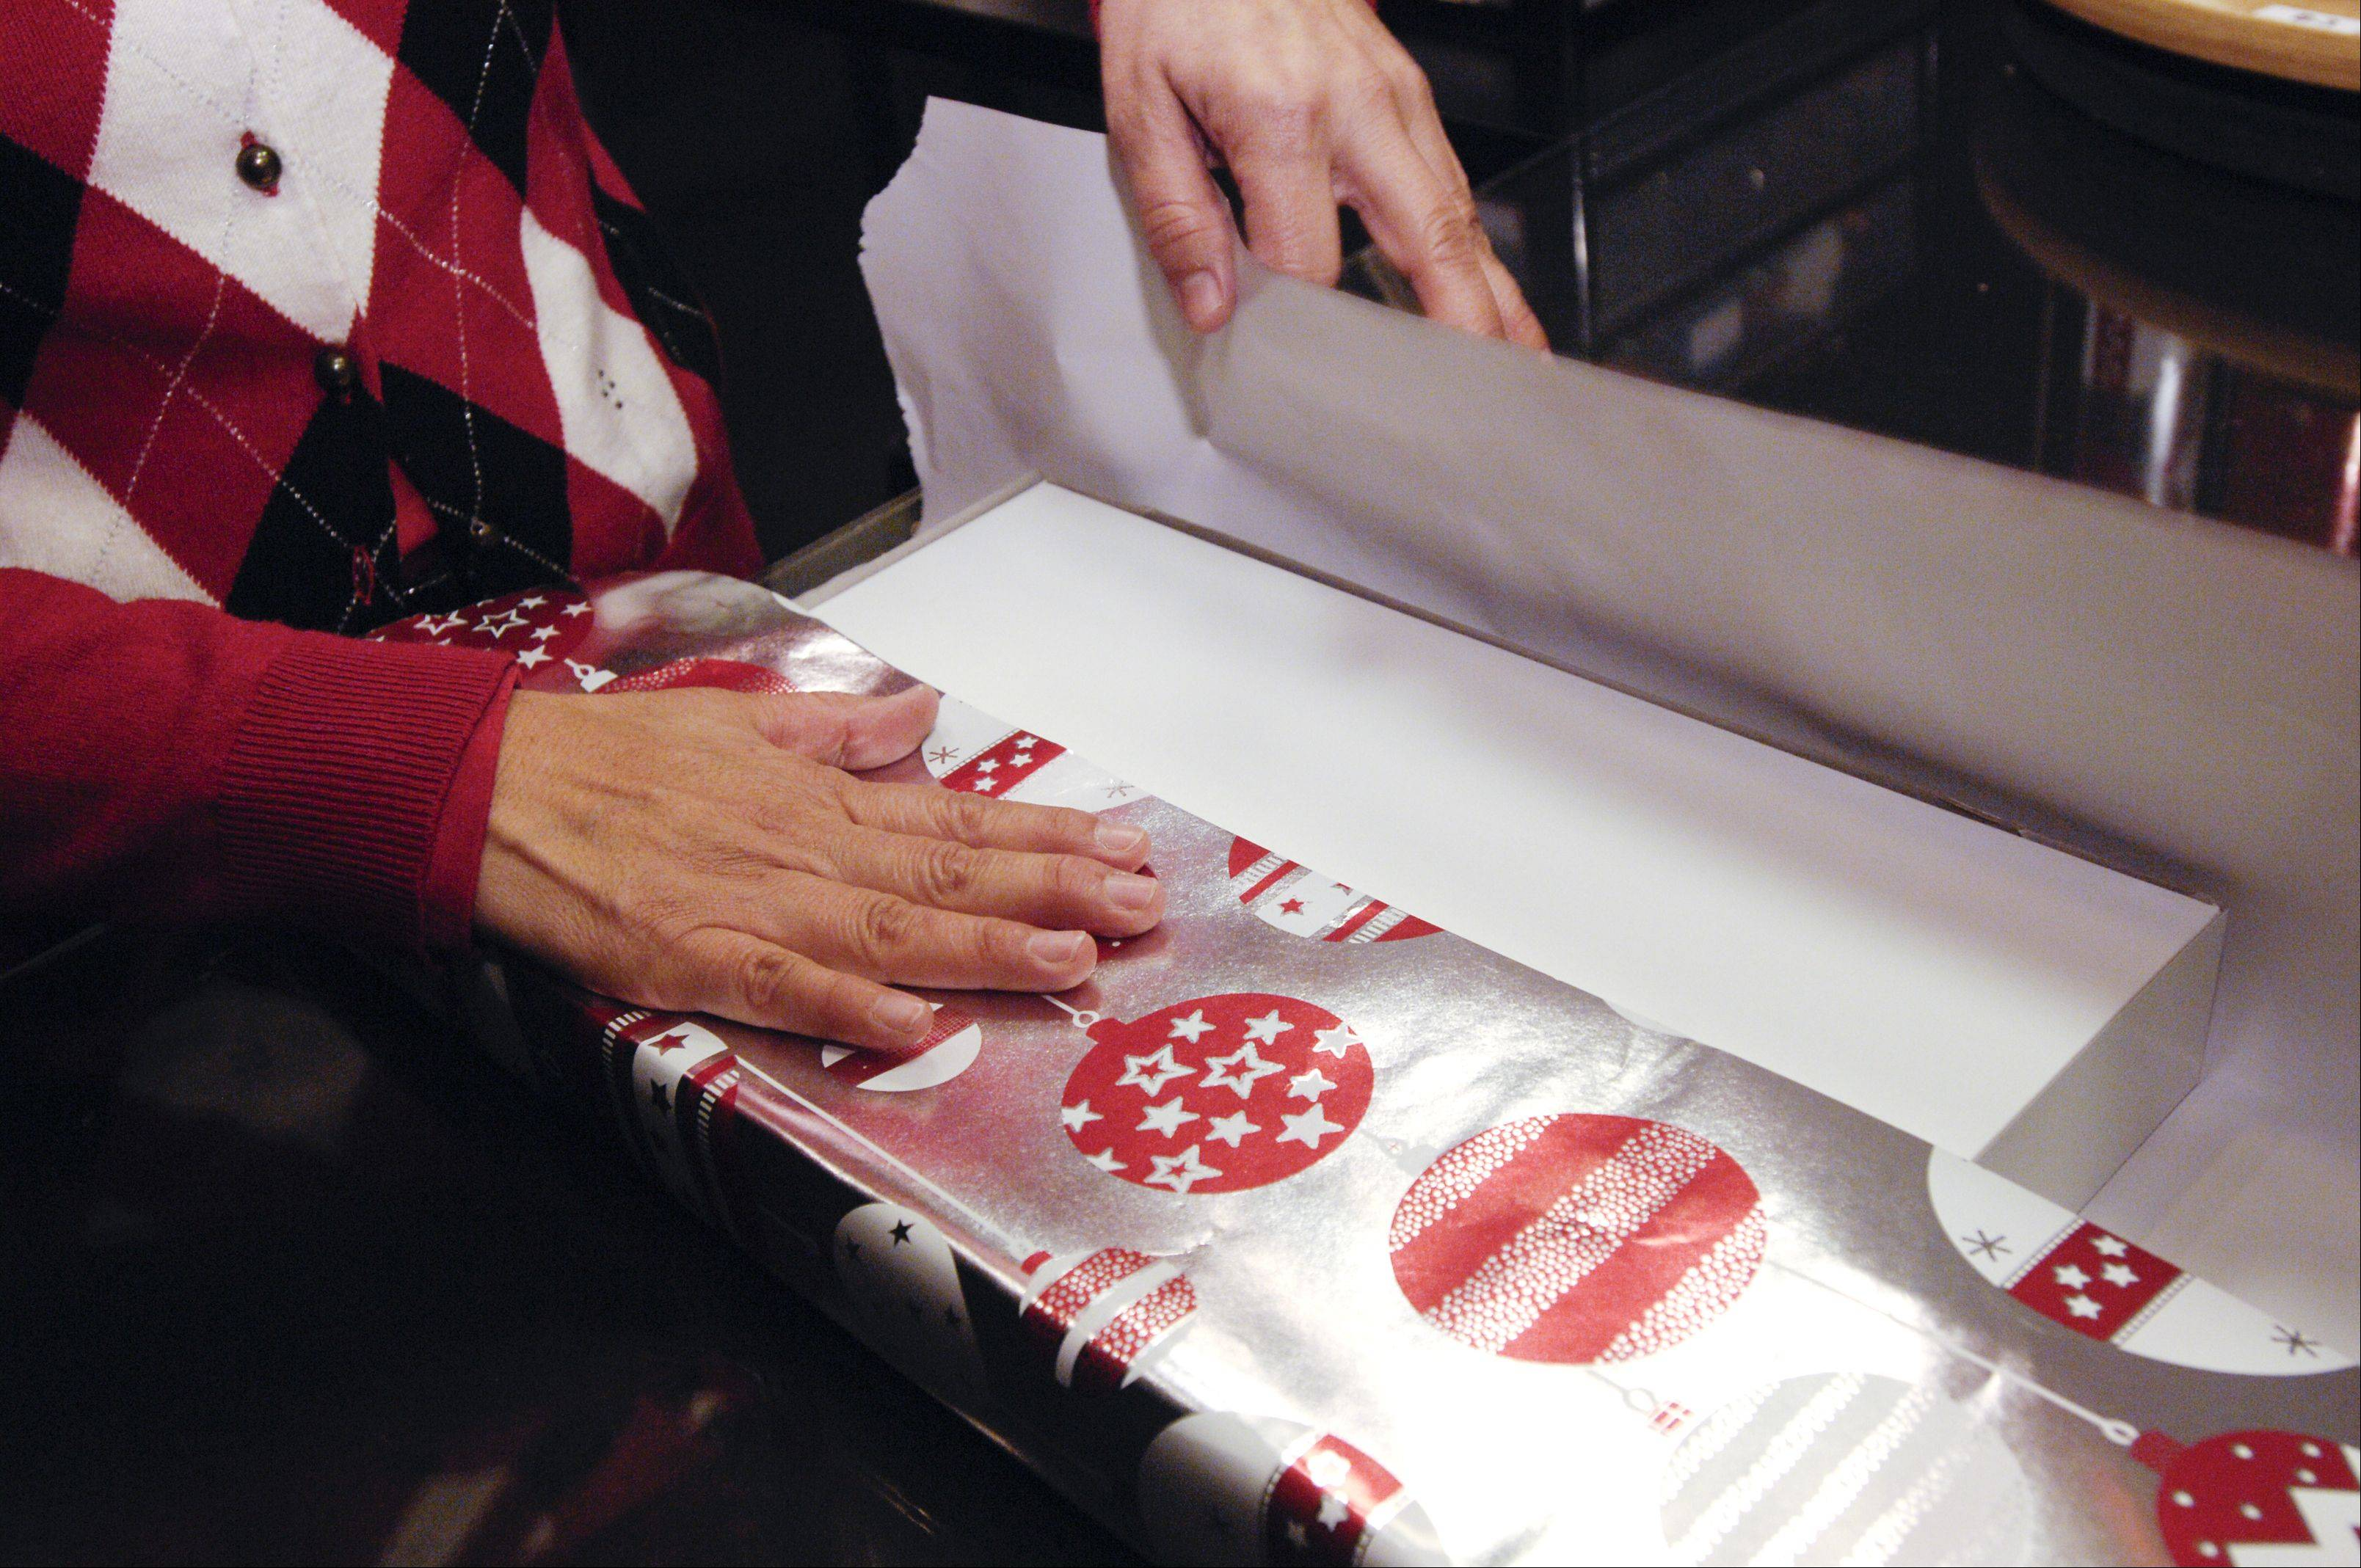 Step 1: Determine how much wrapping paper to use by folding an unsecured side to the center of the box.